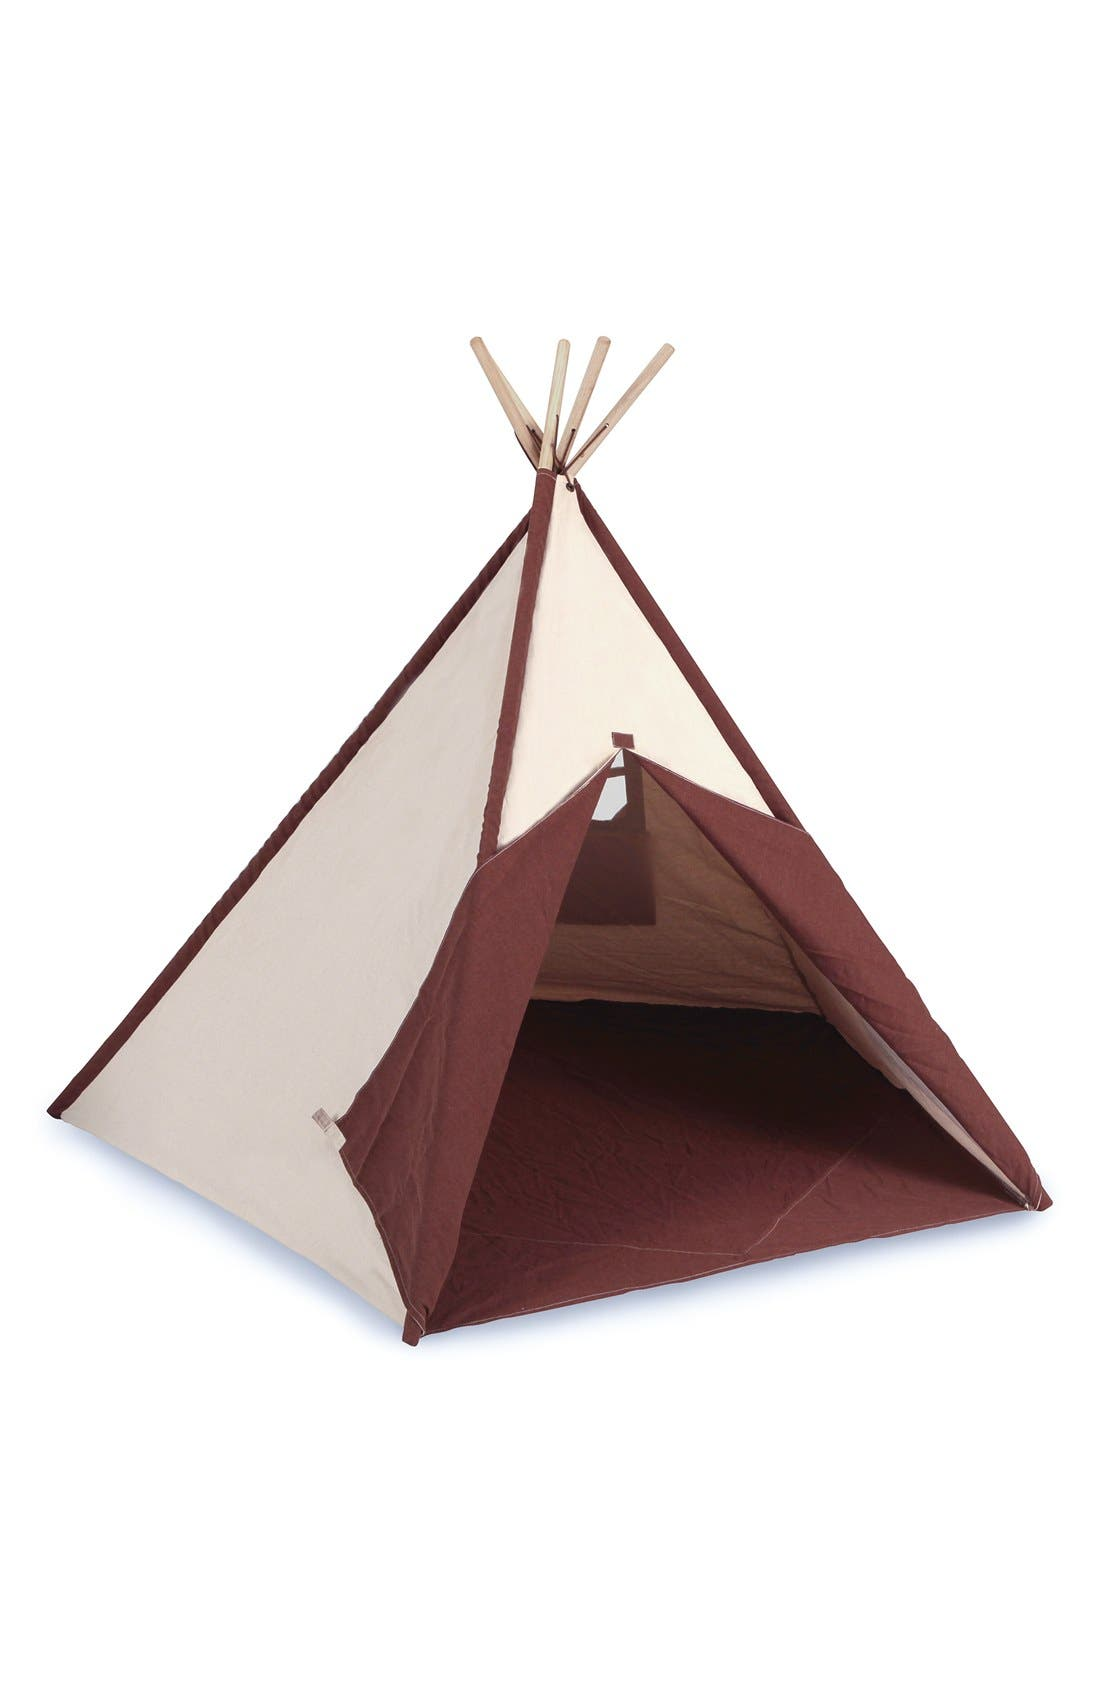 PACIFIC PLAY TENTS,                             Cotton Canvas Teepee,                             Main thumbnail 1, color,                             250